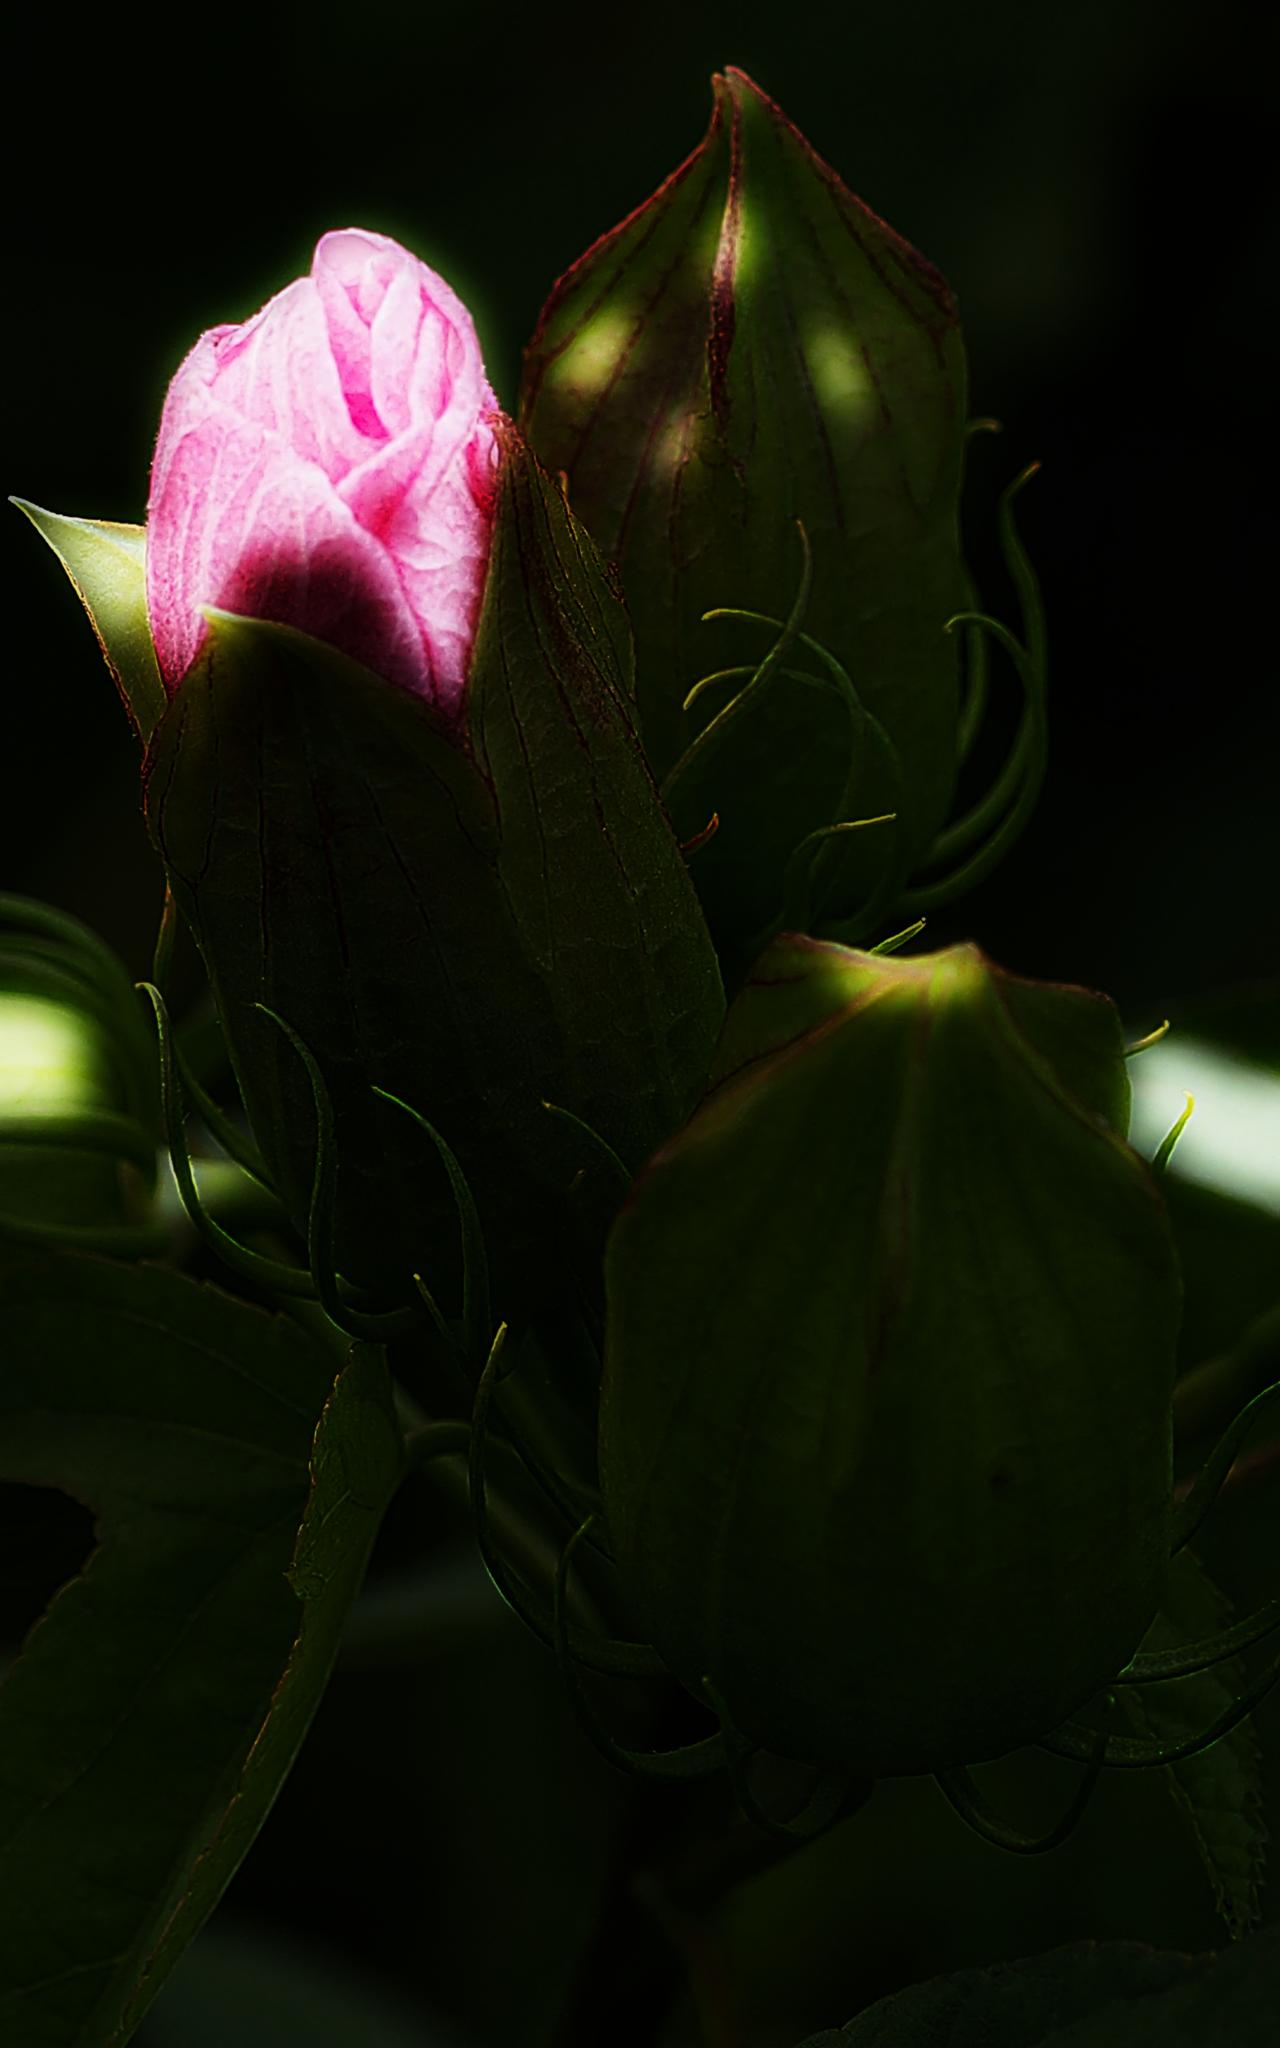 A PINK BUD REACHES FOR VITAL SUNLIGHT by David DeBord